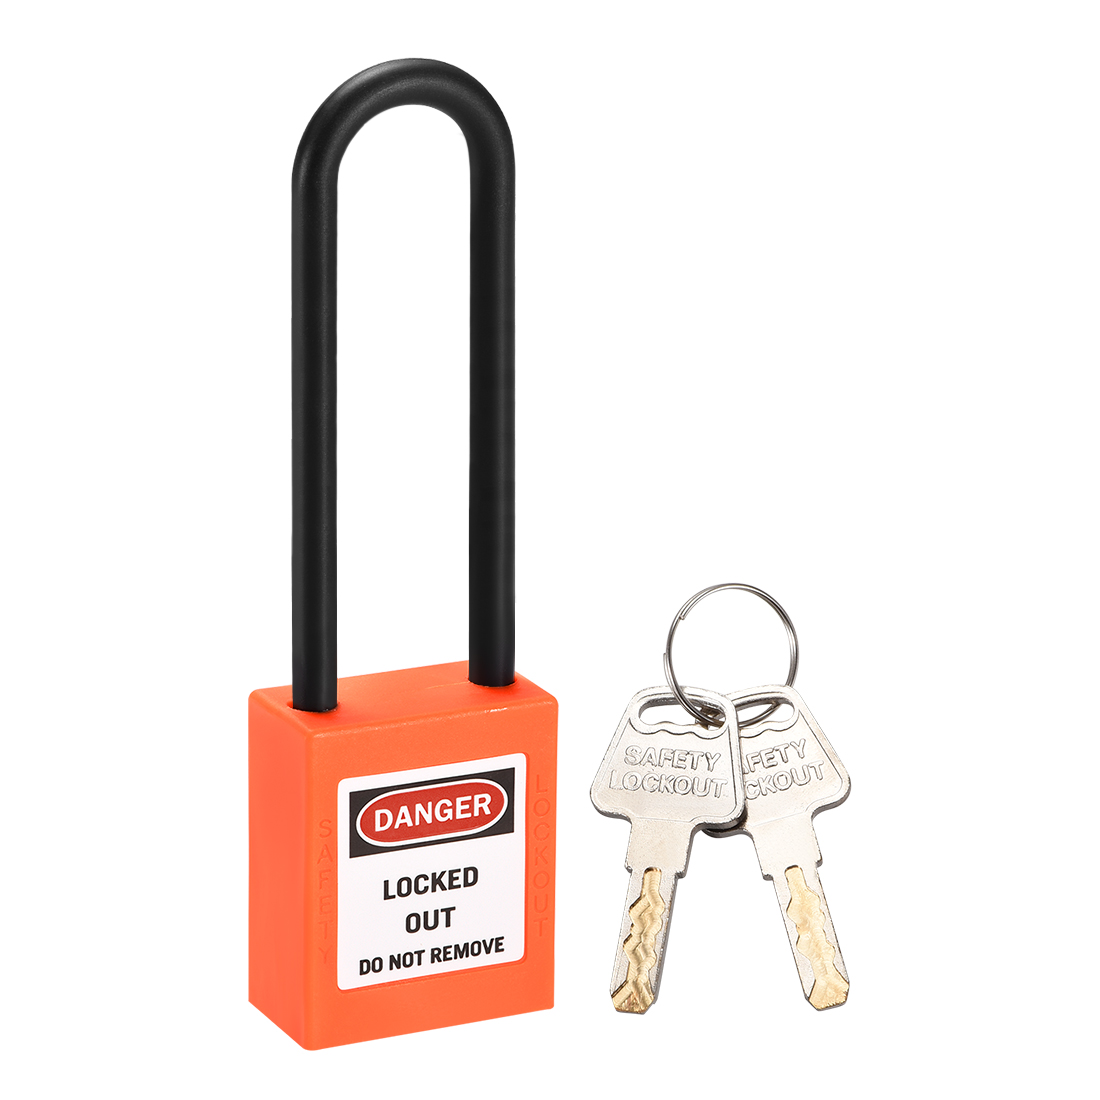 Lockout Tagout Locks 3 Inch Shackle Key Different Safety Padlock Plastic Orange